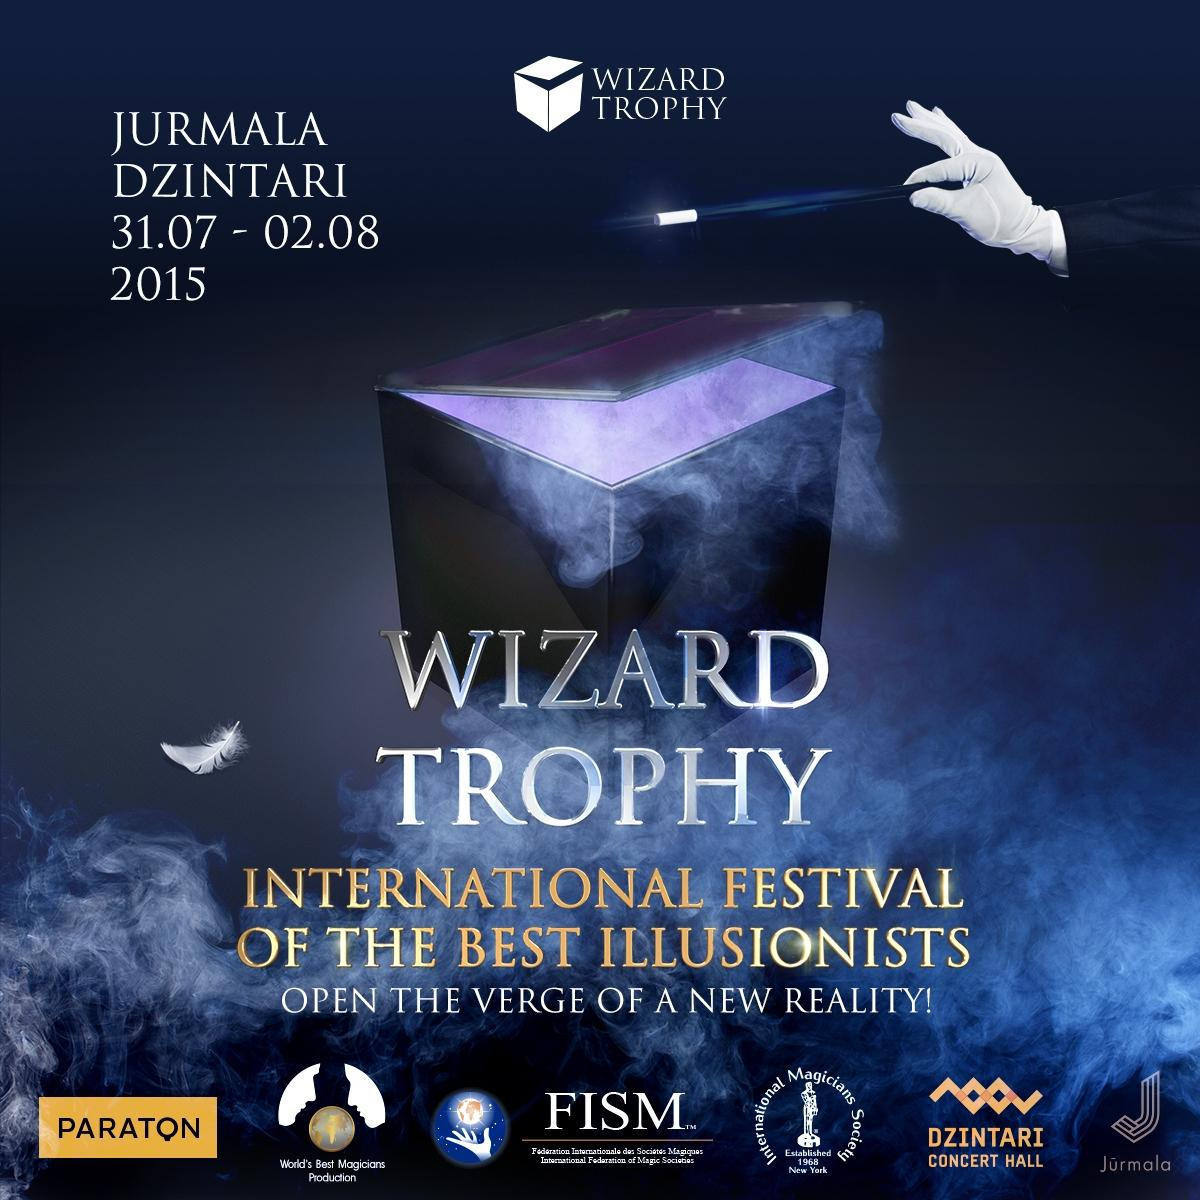 WIZARD TROPHY OR CUBED MAGIC